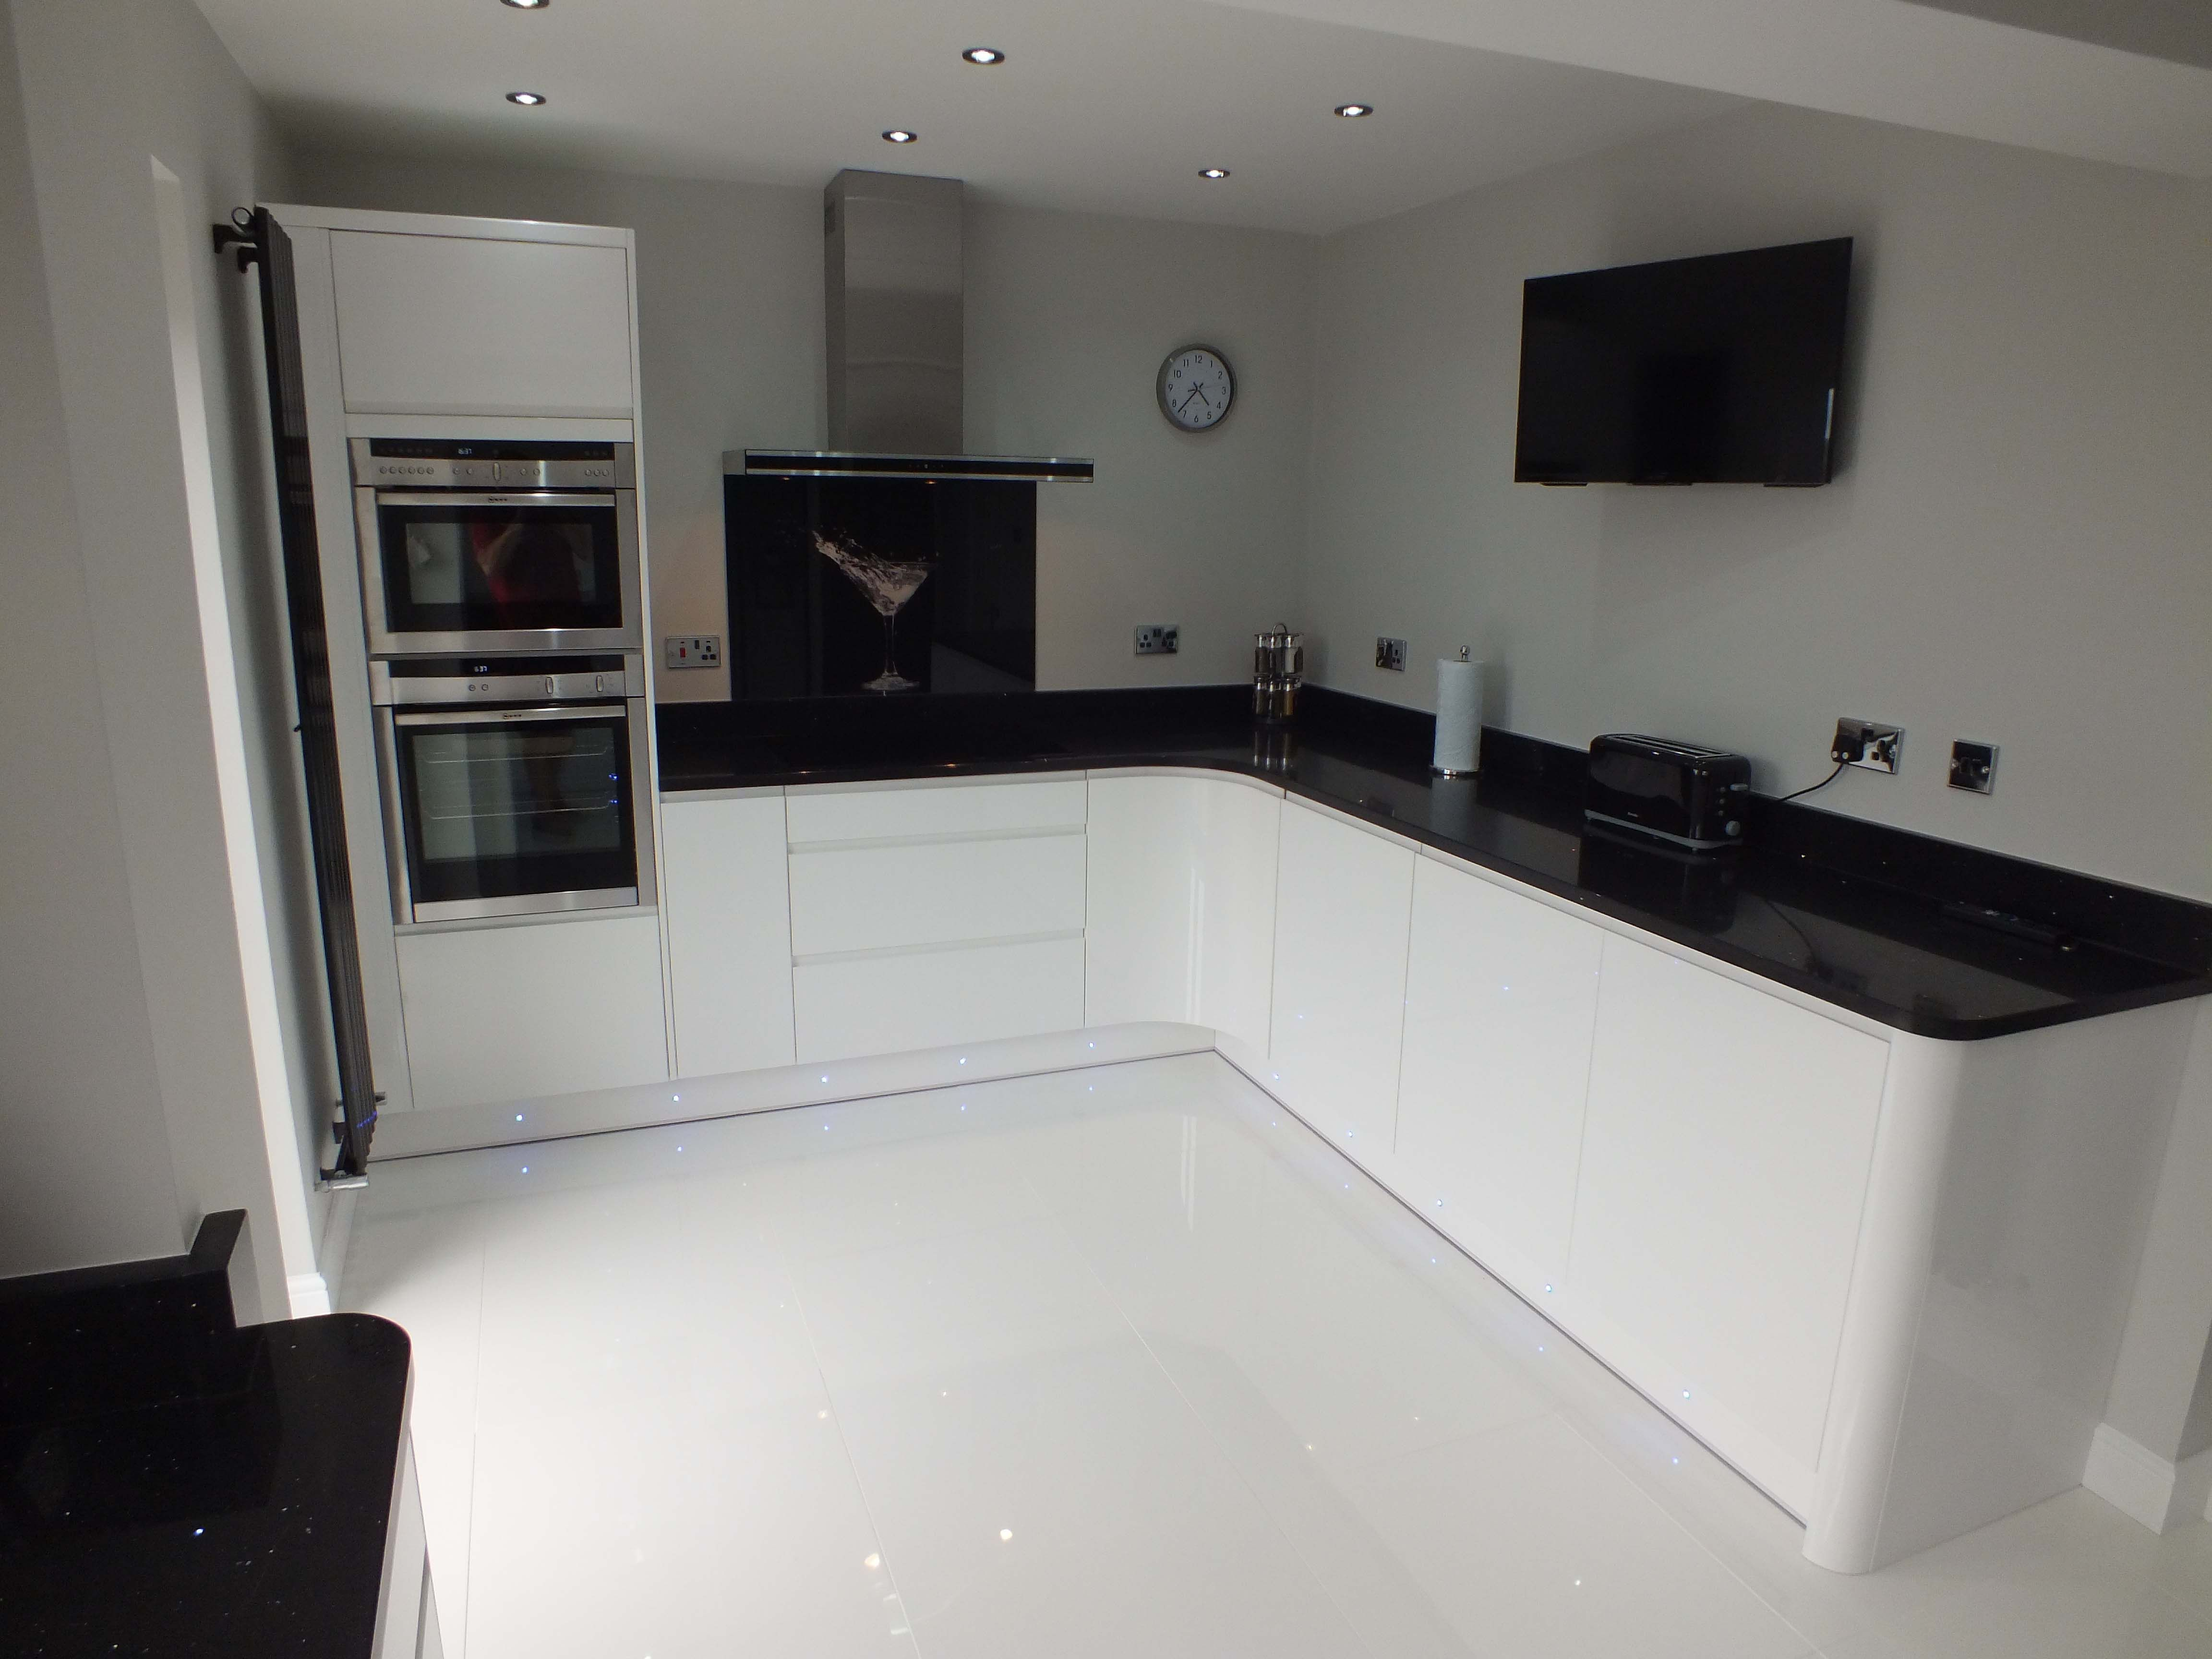 This monochrome kitchen is ultra sleek with Handleless